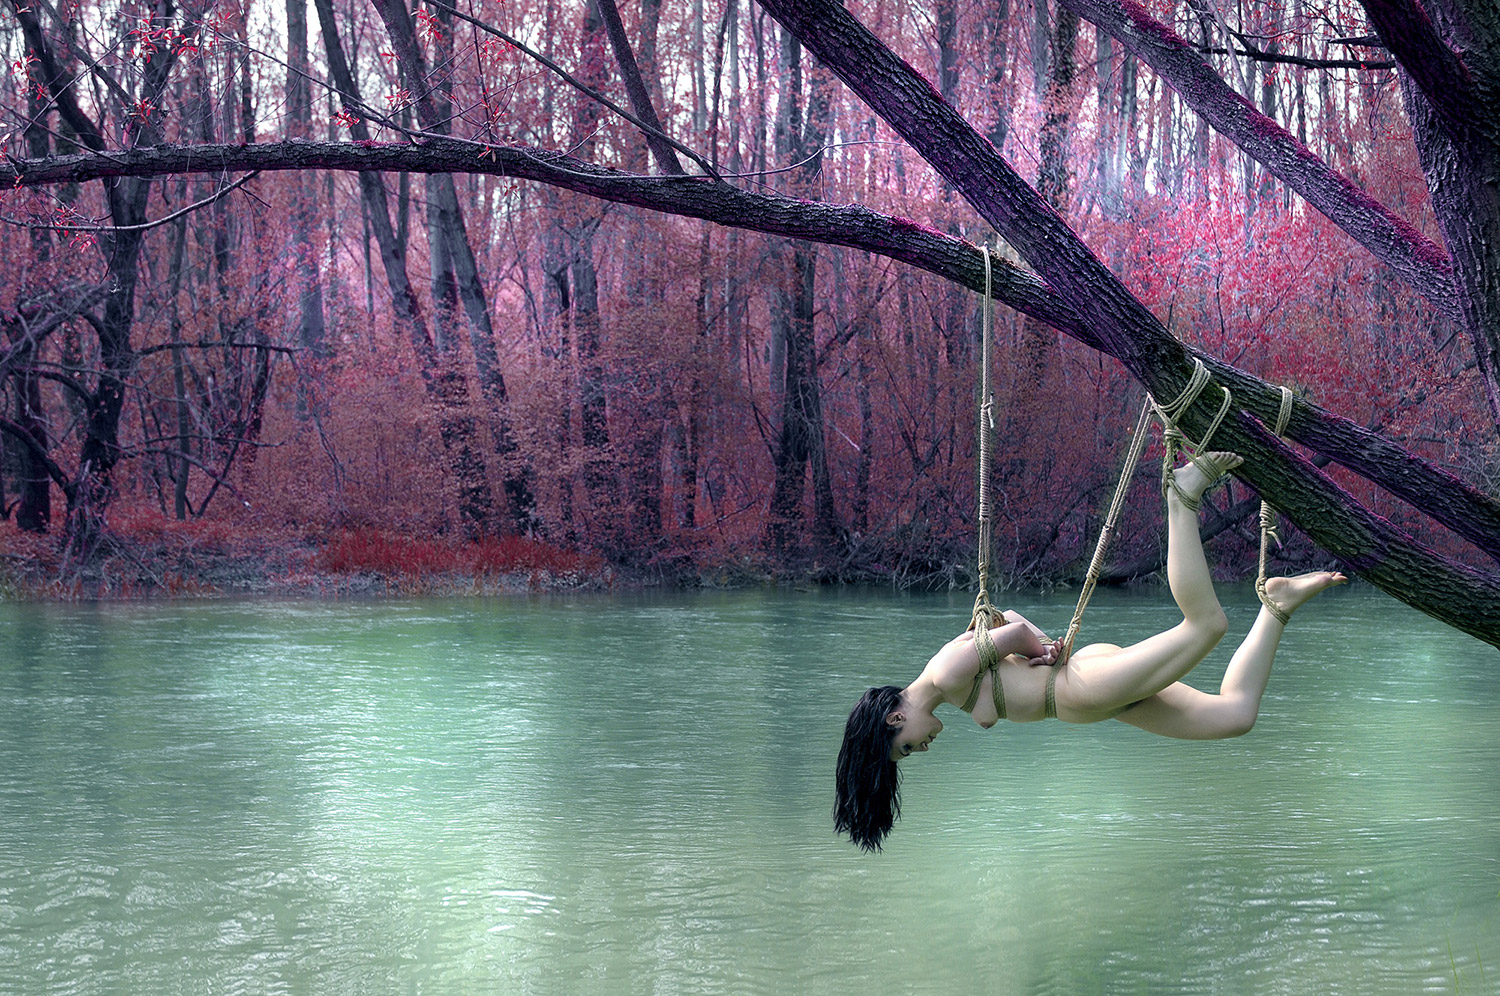 Japanese Bondage (Shibari) - Hikari Kesho, Observing the Stillness of Brenta River